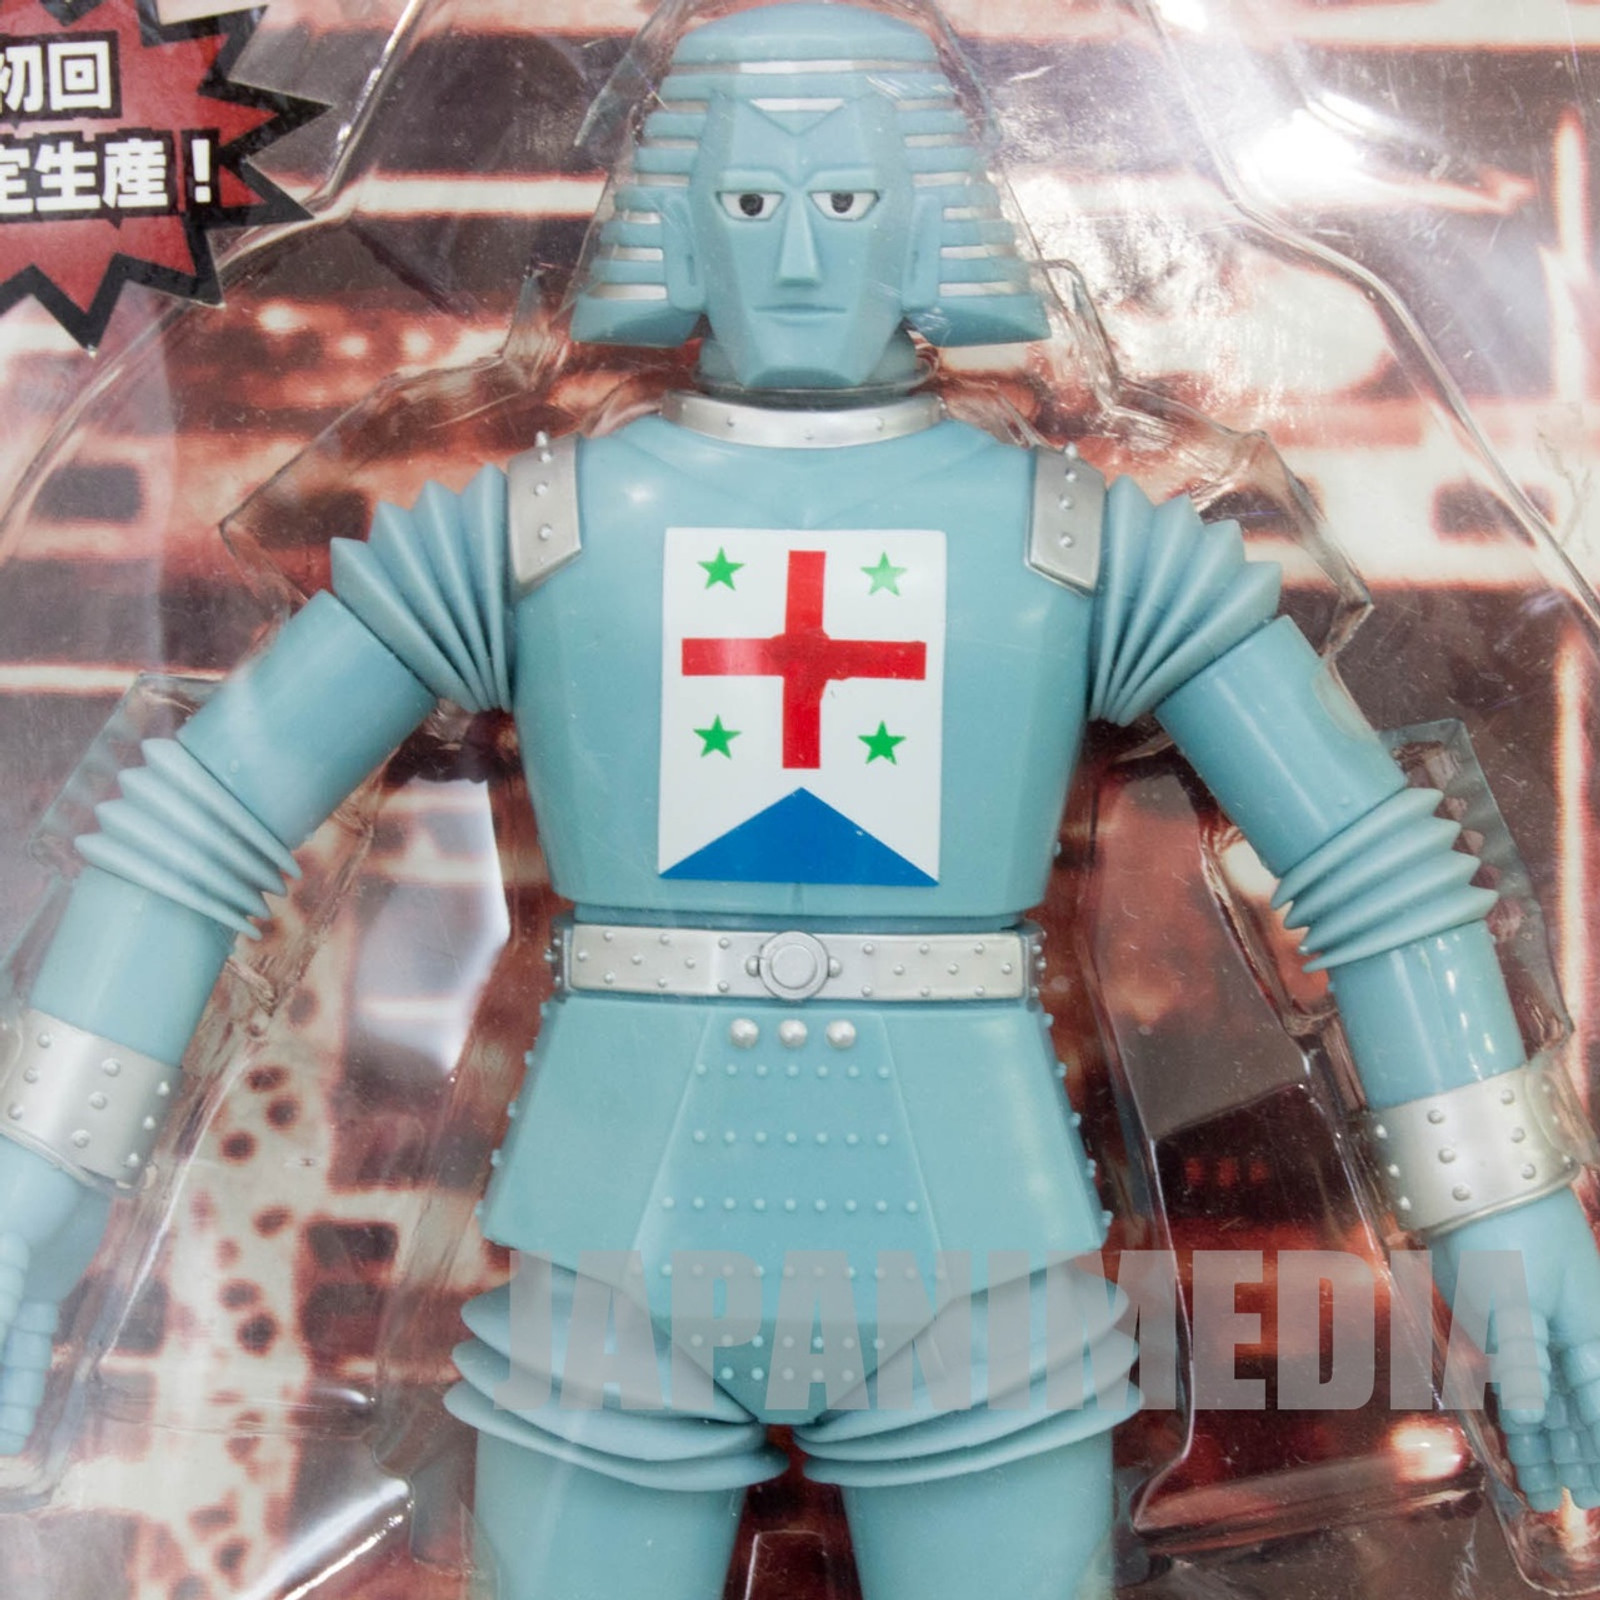 Giant Robo Calamity Miracle Action Figure Medicom Toy Mitsuteru Yokoyama JAPAN